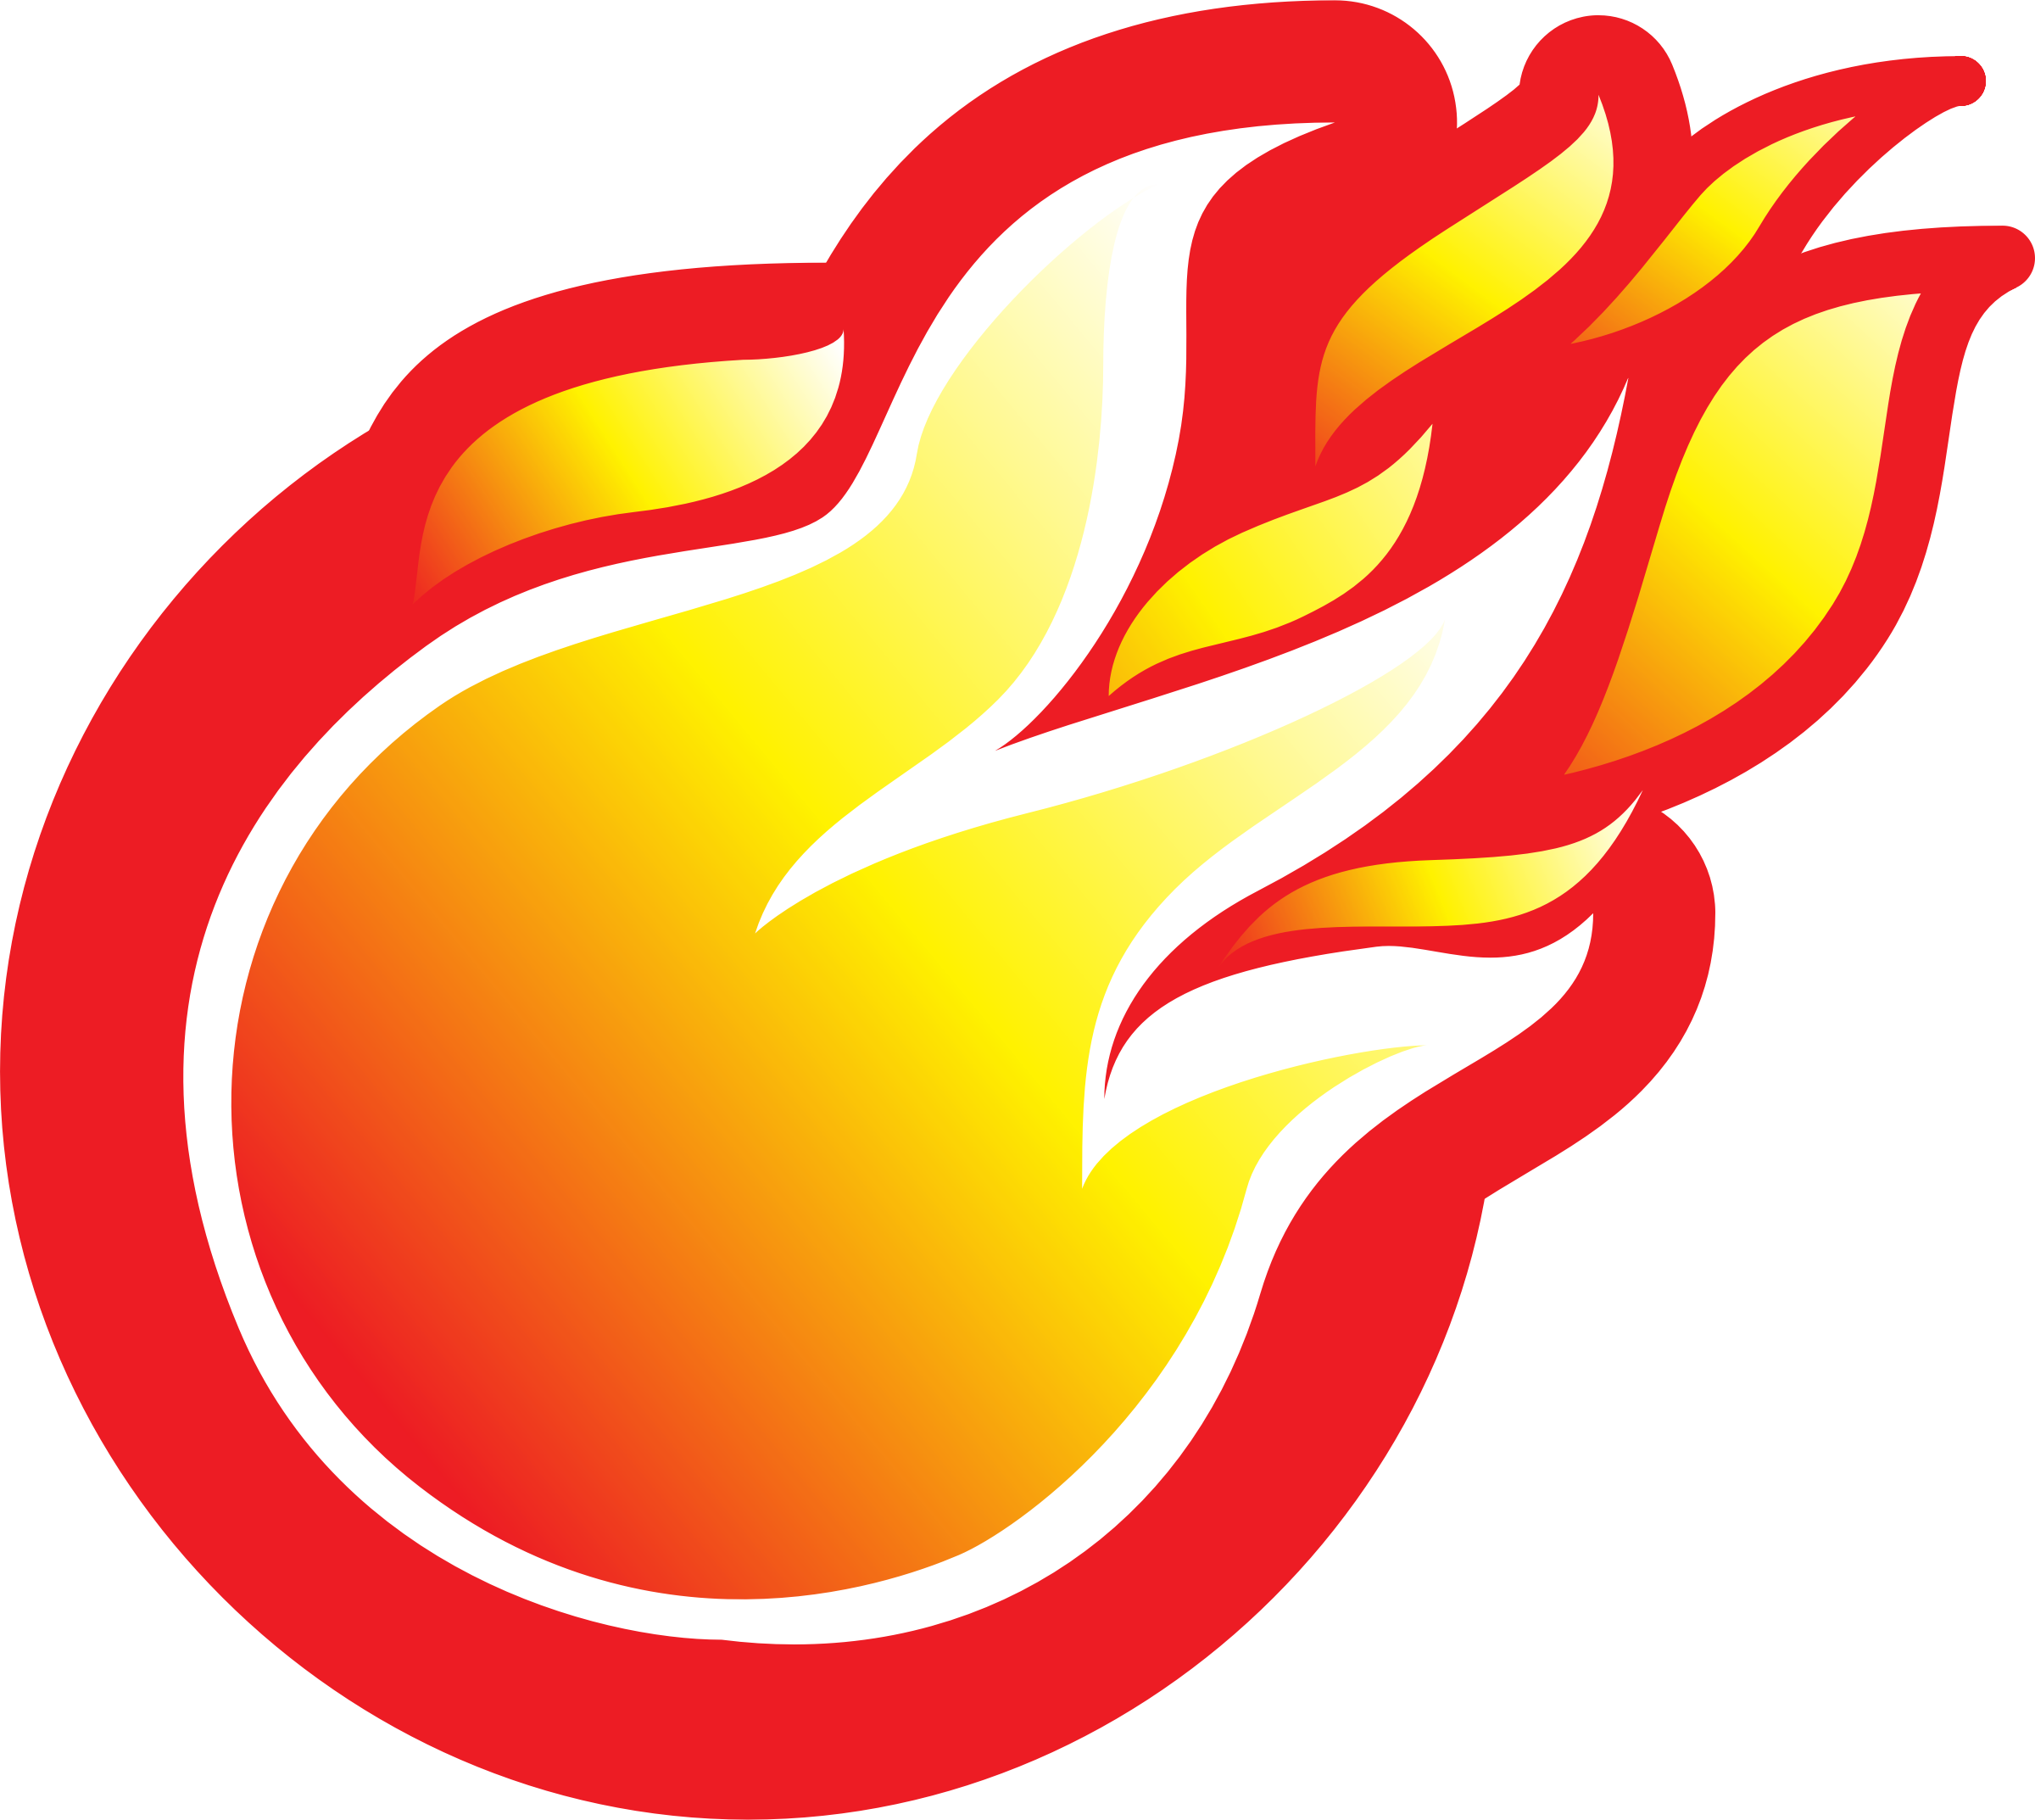 Flames flame clip art vector graphics image 4 2 - ClipartBarn graphic library download